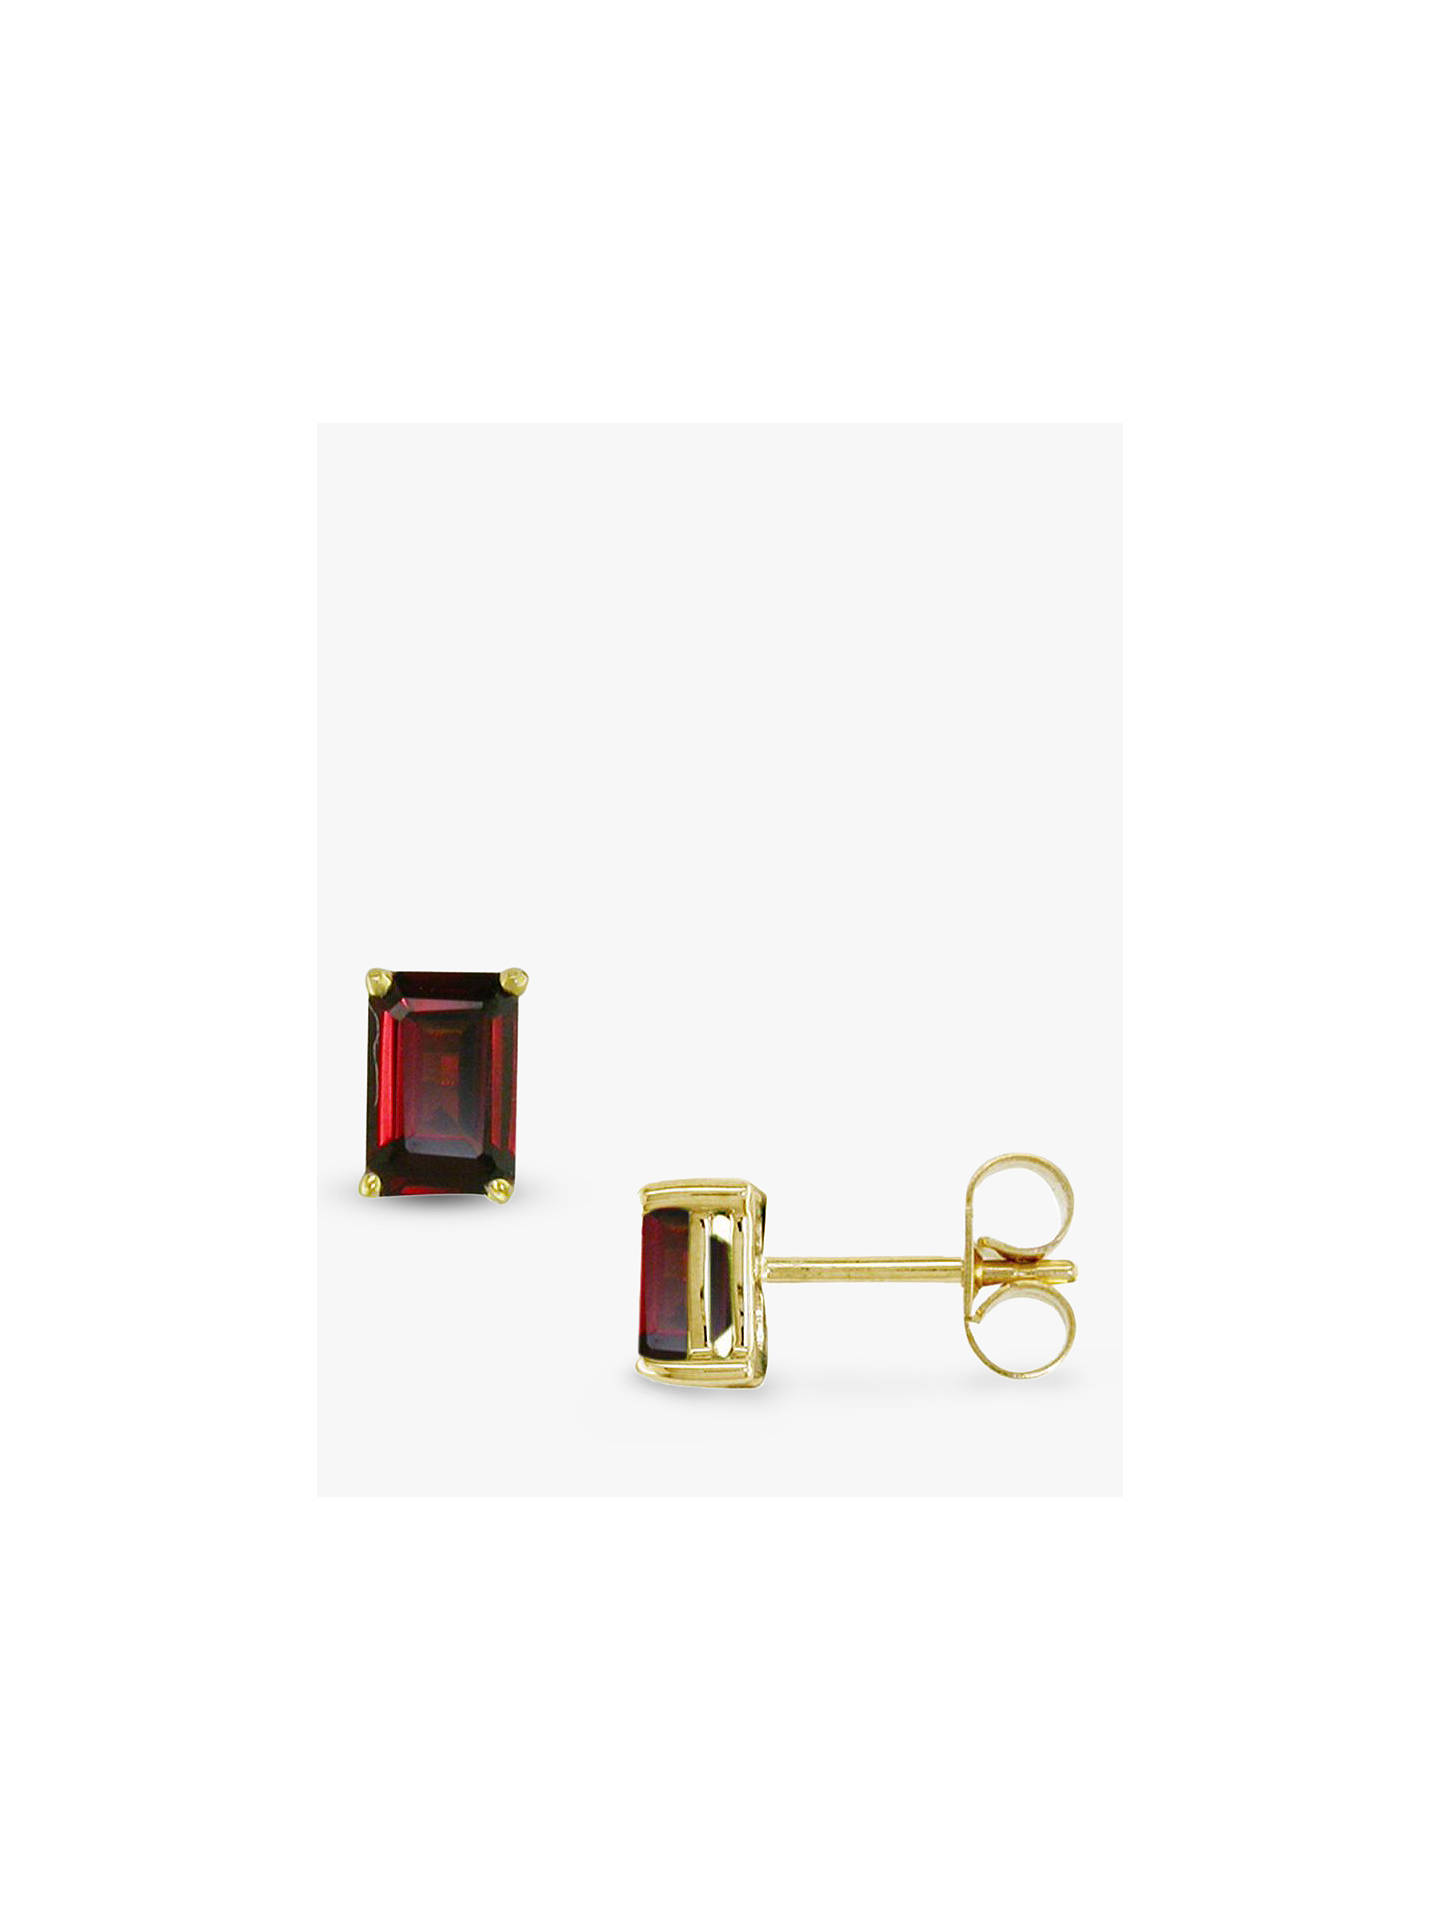 E.W Adams 9ct Gold Garnet Stud Earrings